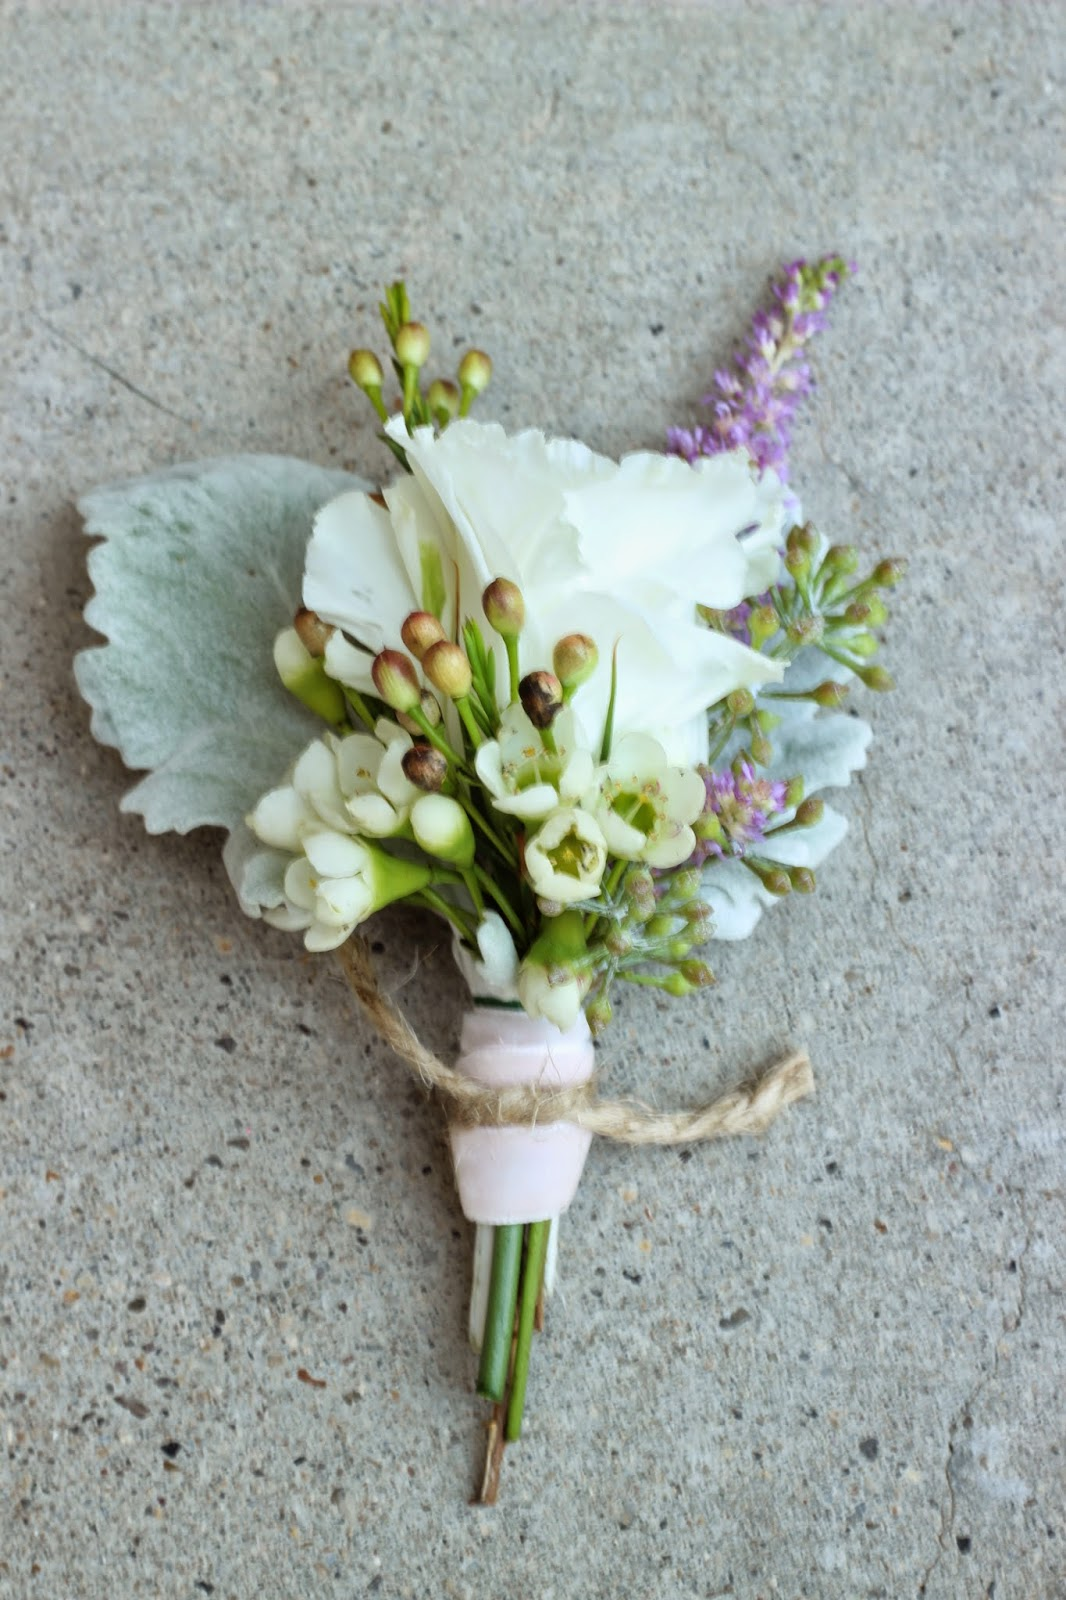 Pink satin ribbon tied with rustic twine